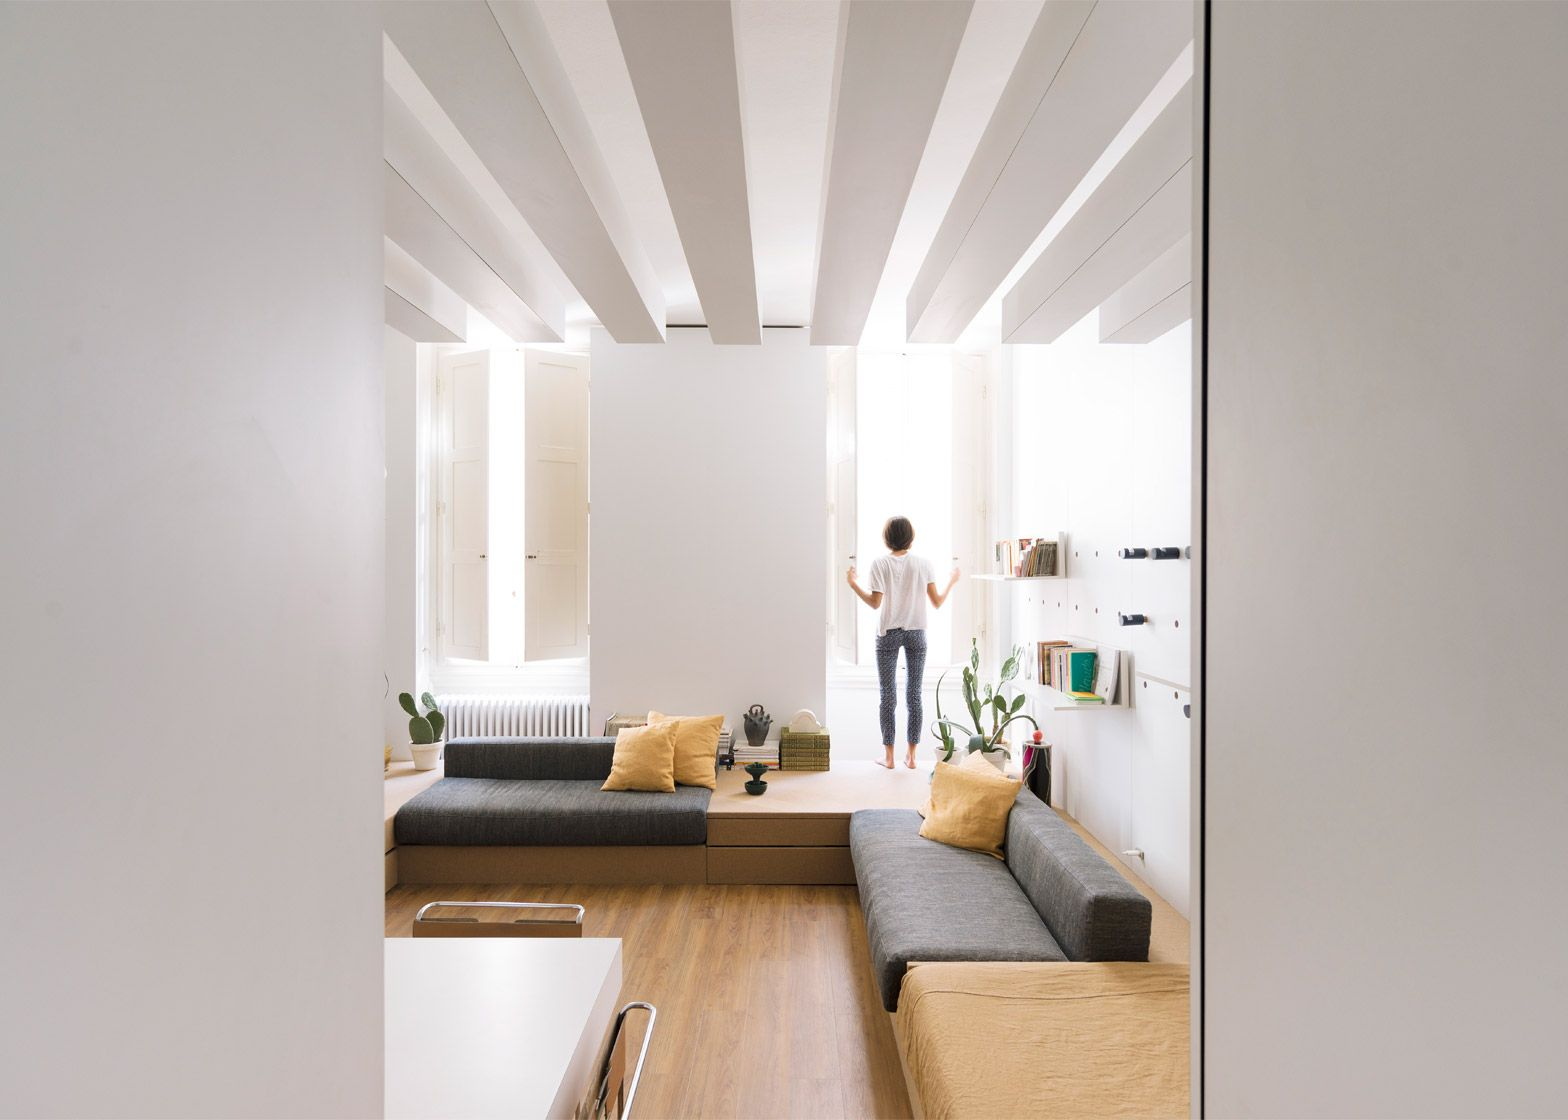 Architect Silvia Allori has overhauled a 1970s apartment in Florence ...